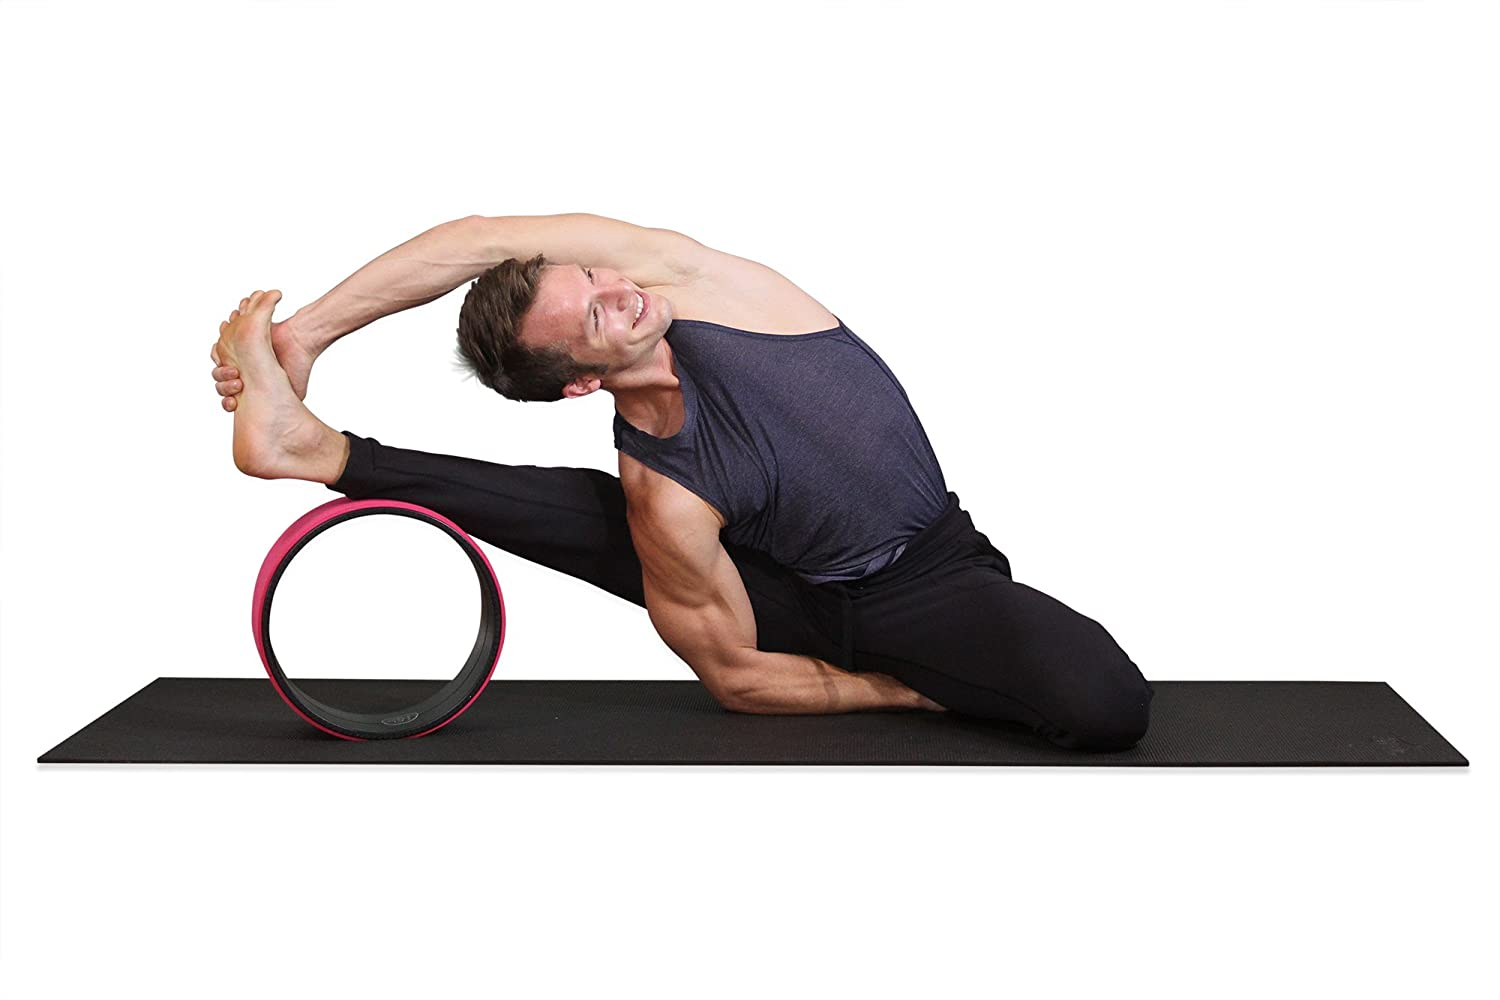 SukhaMat Yoga Wheel - NEW! Pro Series - Dharma Yoga Prop Wheel, Back Stretcher, with Printed Guide & Online Video, 12.5 x 5 Inch Basic